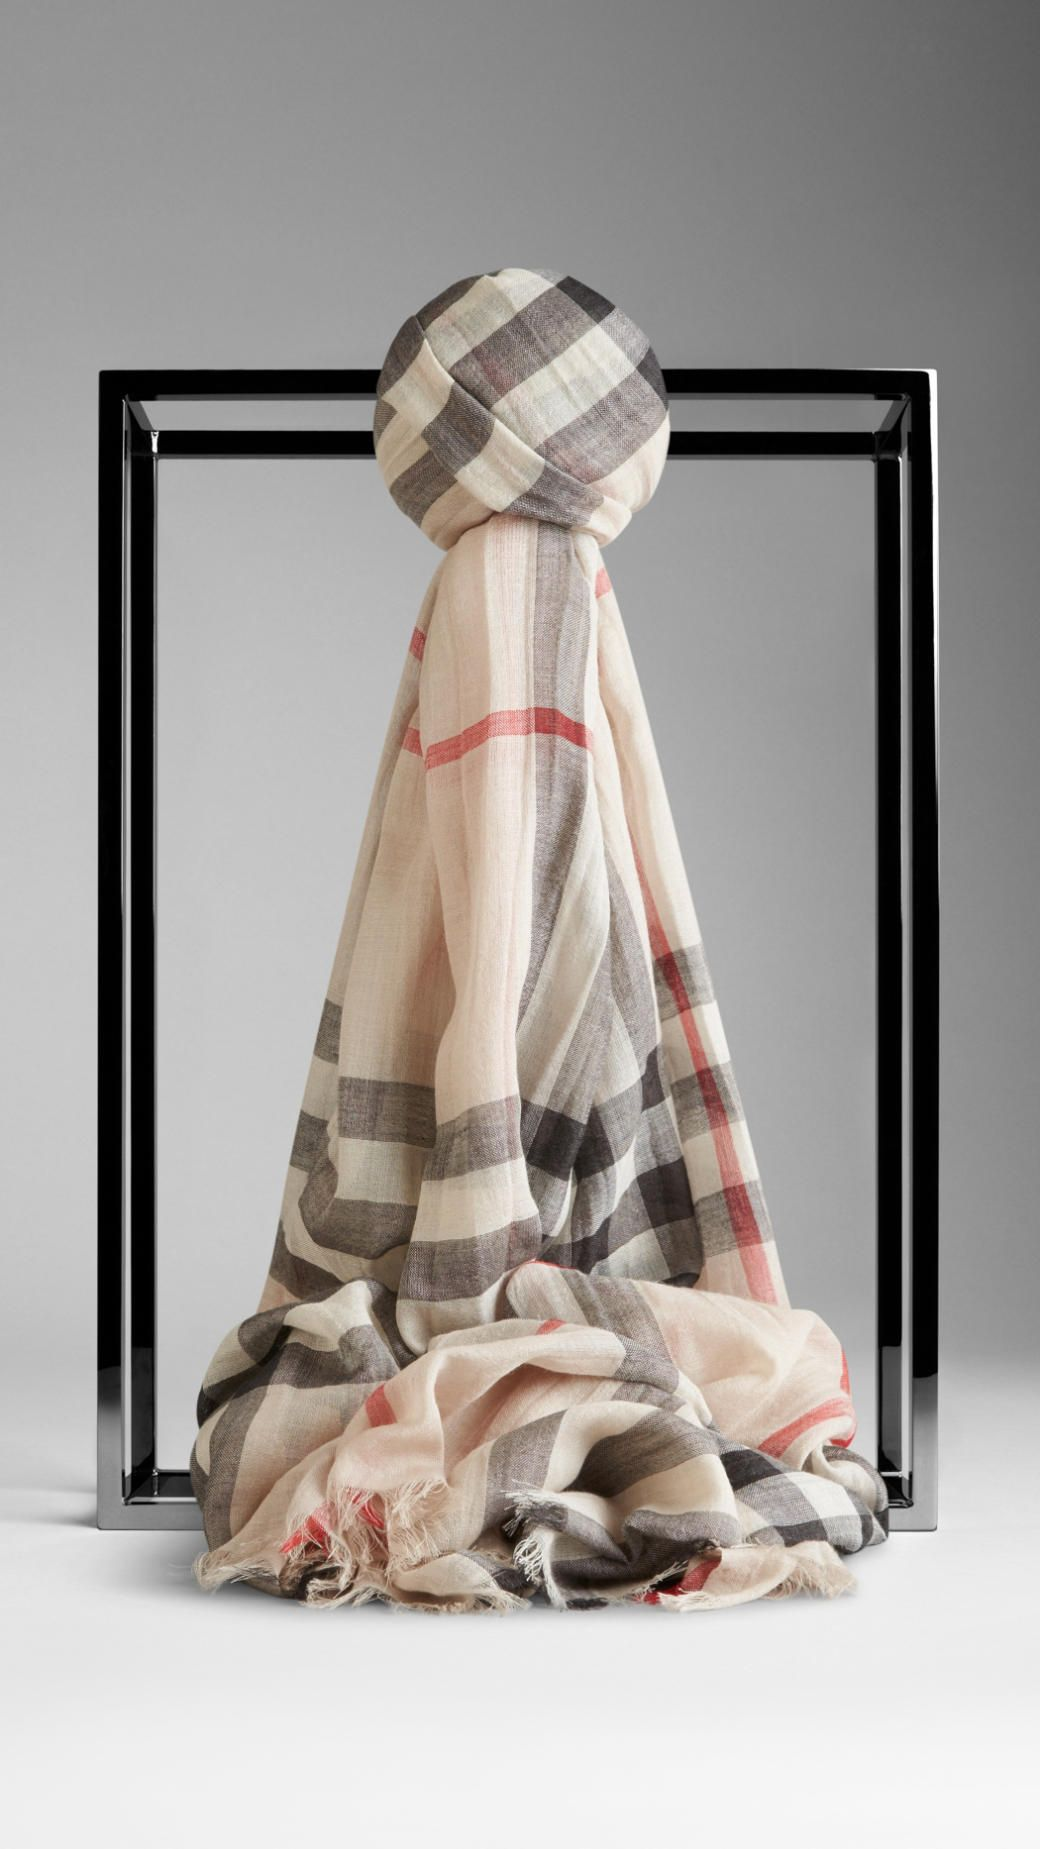 Lightweight Check Wool and Silk Scarf in Stone   Style   Pinterest e8e90ca1968